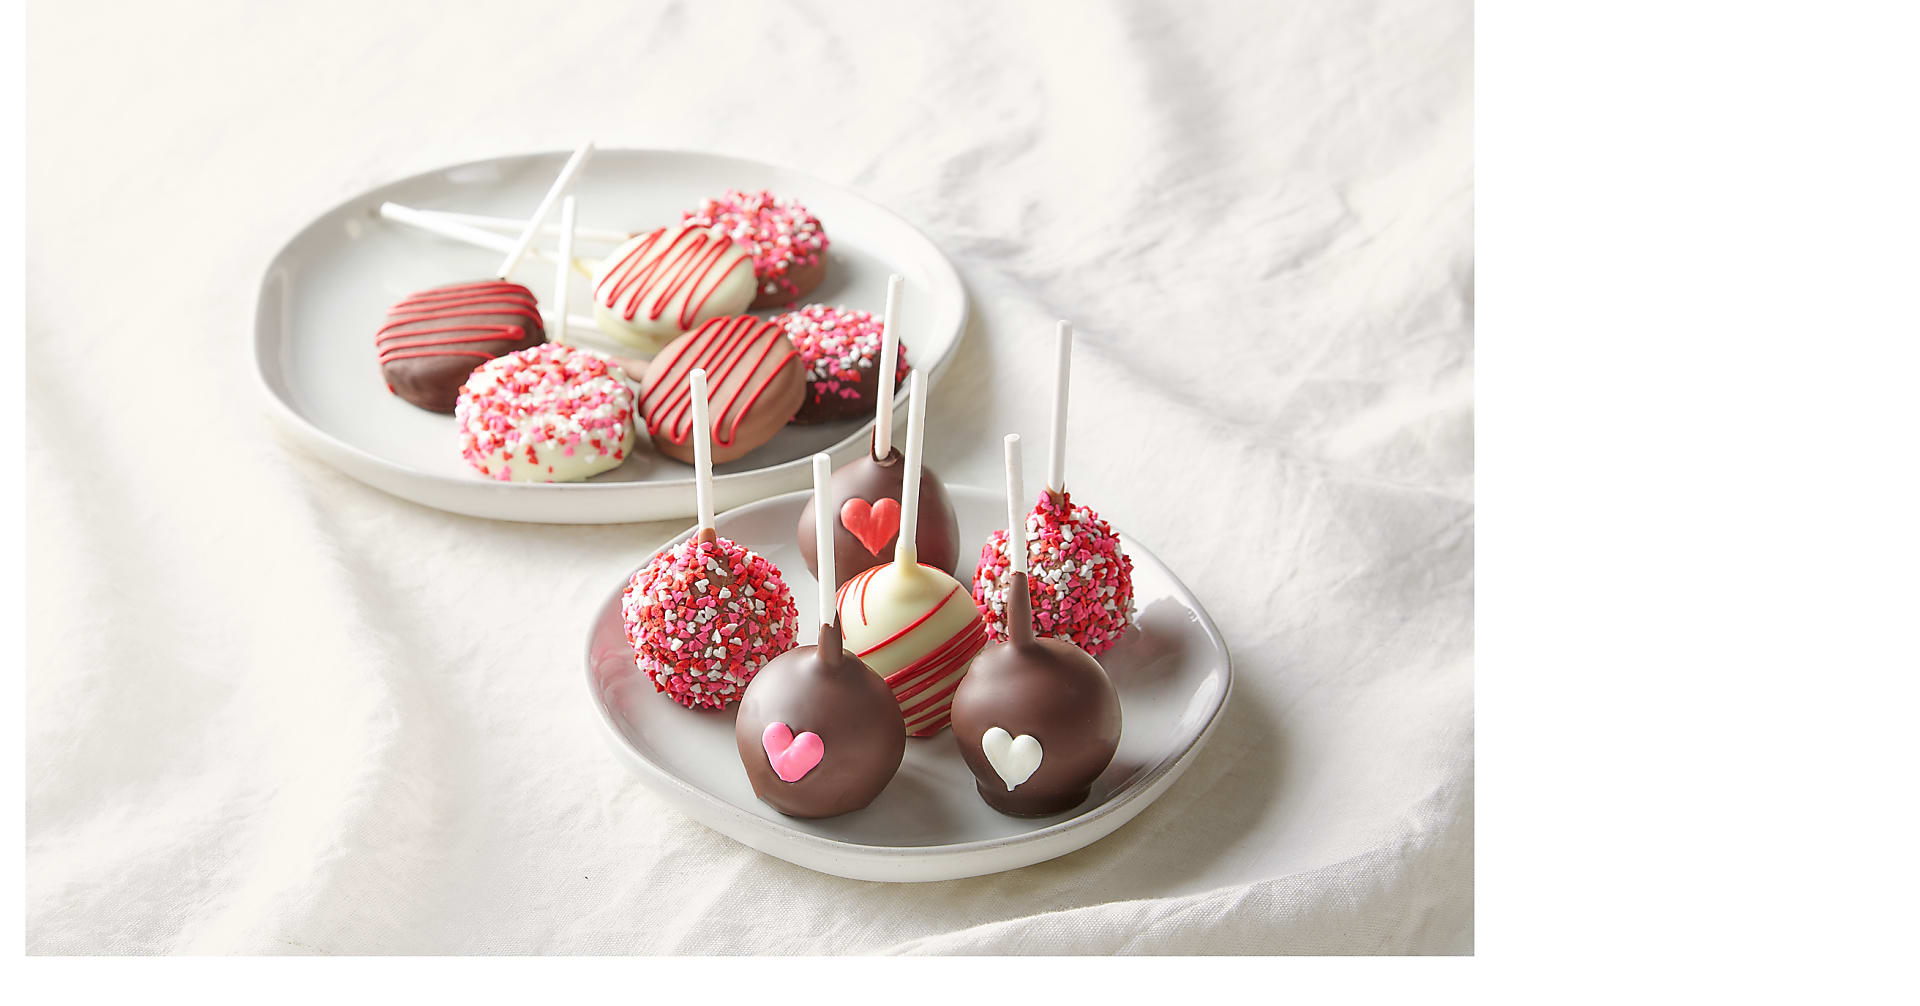 Love Hearts Belgian Chocolate Dipped Cake & OREO® Cookie Pops - Image 1 Of 2